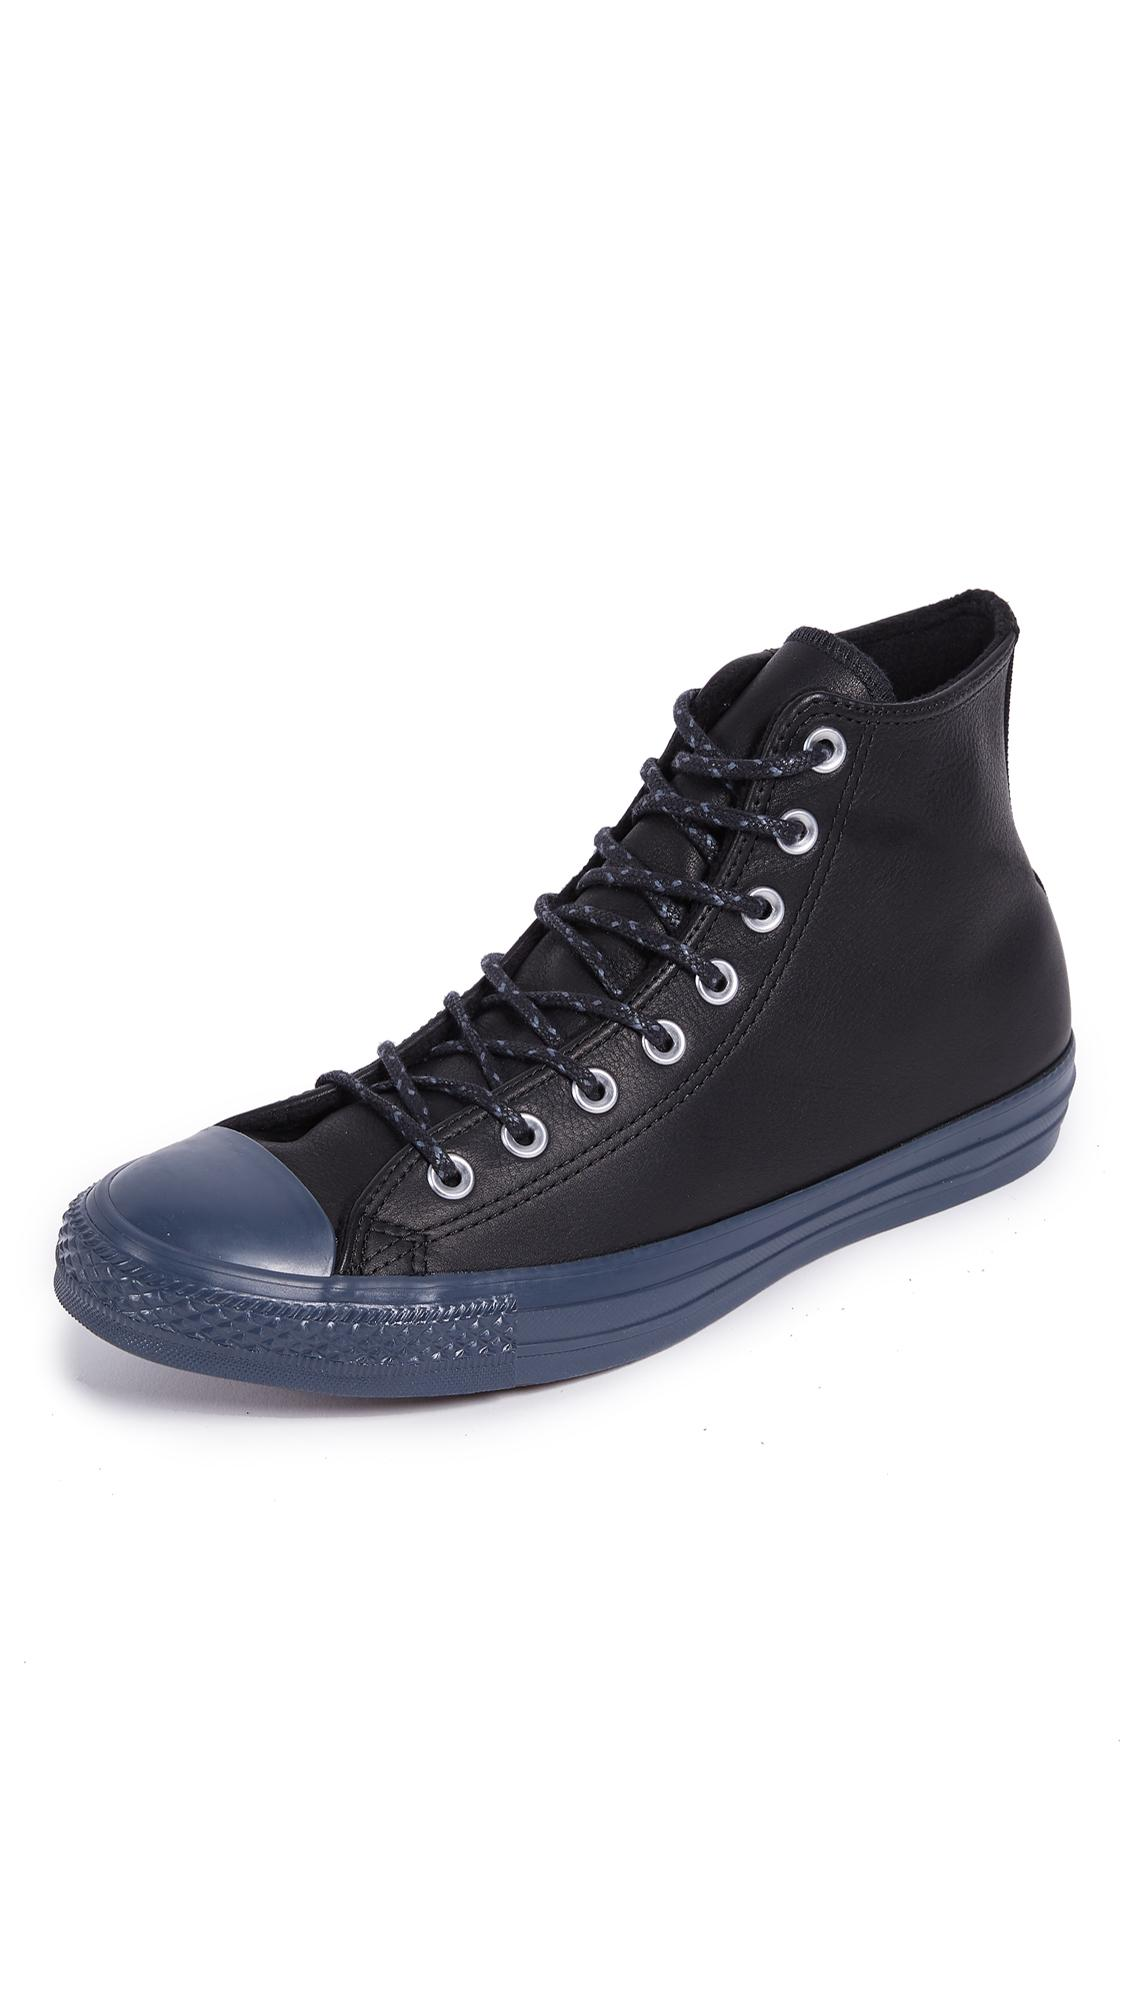 Converse Chuck Taylor Hi With Thermal Lining In Black/Black